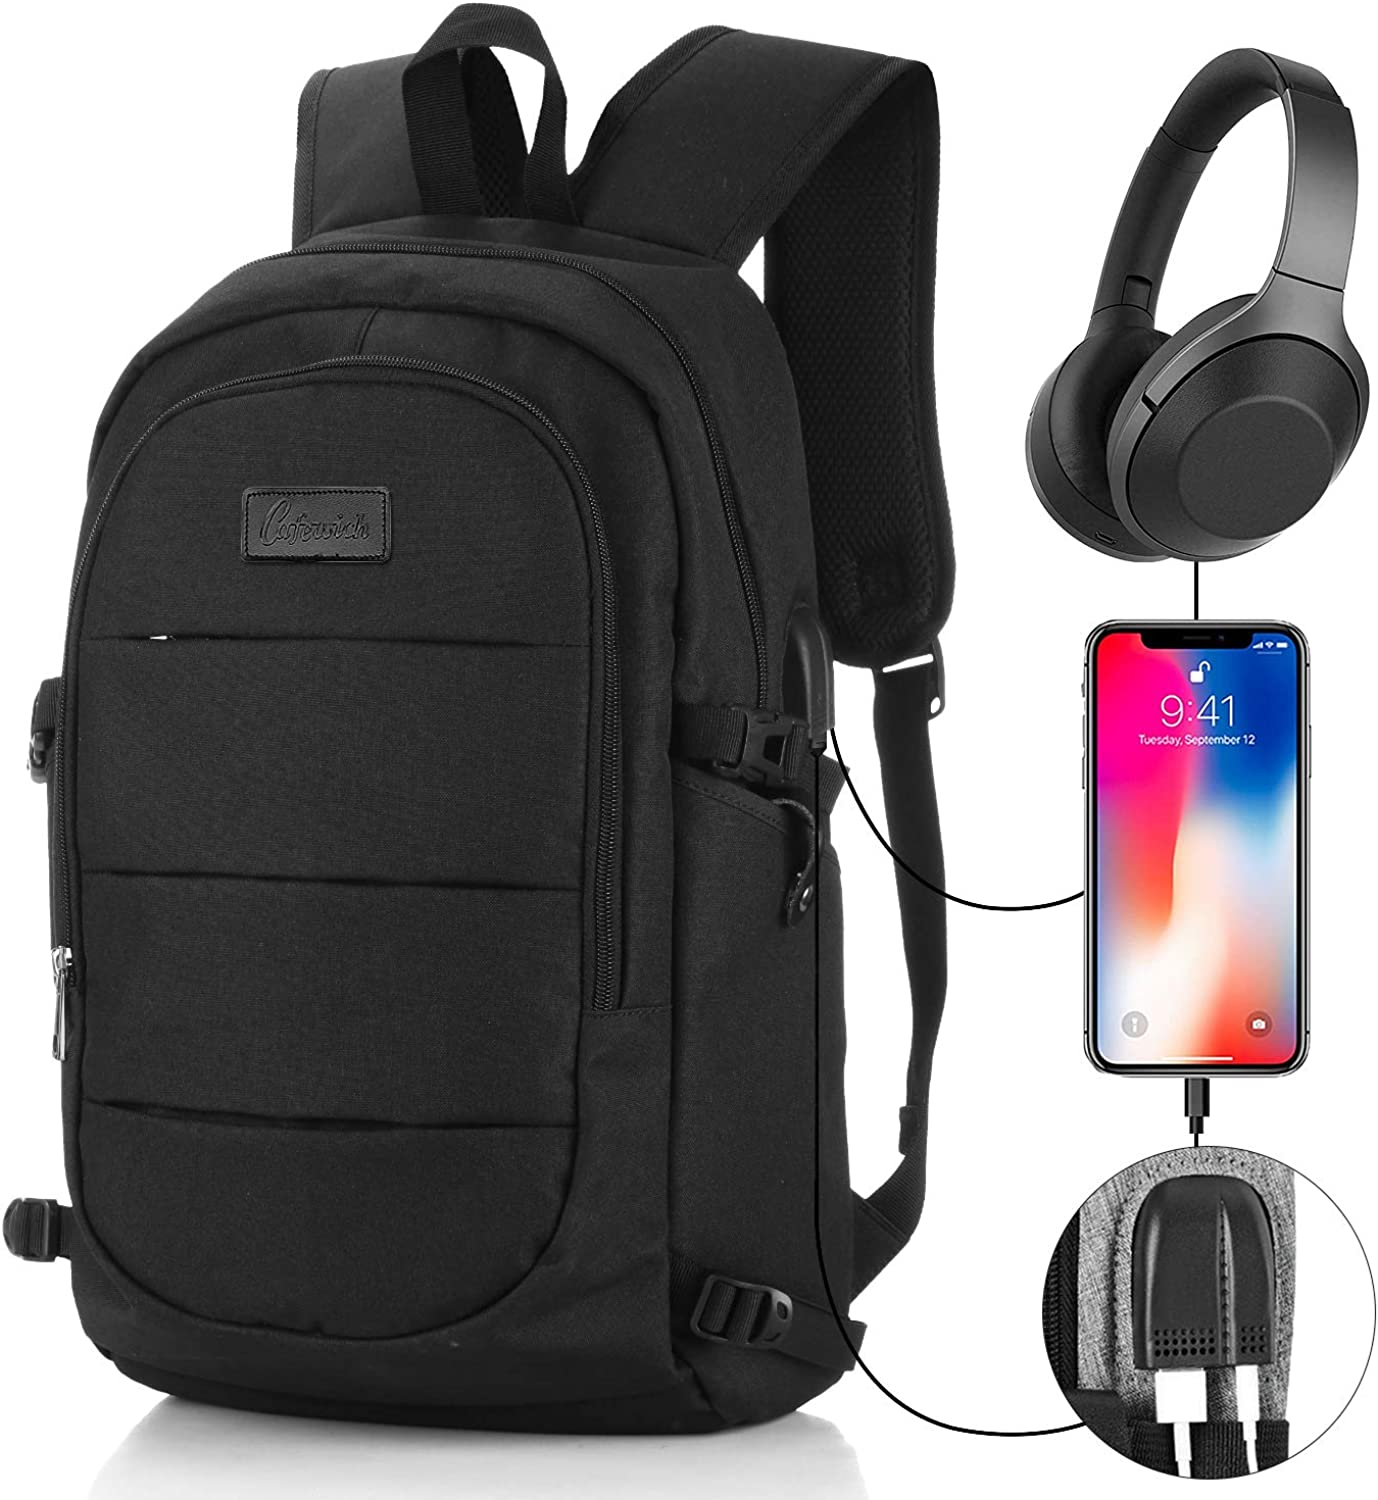 "Travel Laptop Backpack for Man&Women Anti-theft Business Computer Bag Waterproof Backpack with USB Charging Port & Headphone interface for College Student,Fits Under 17"" Laptop by Cafewich (Black)"